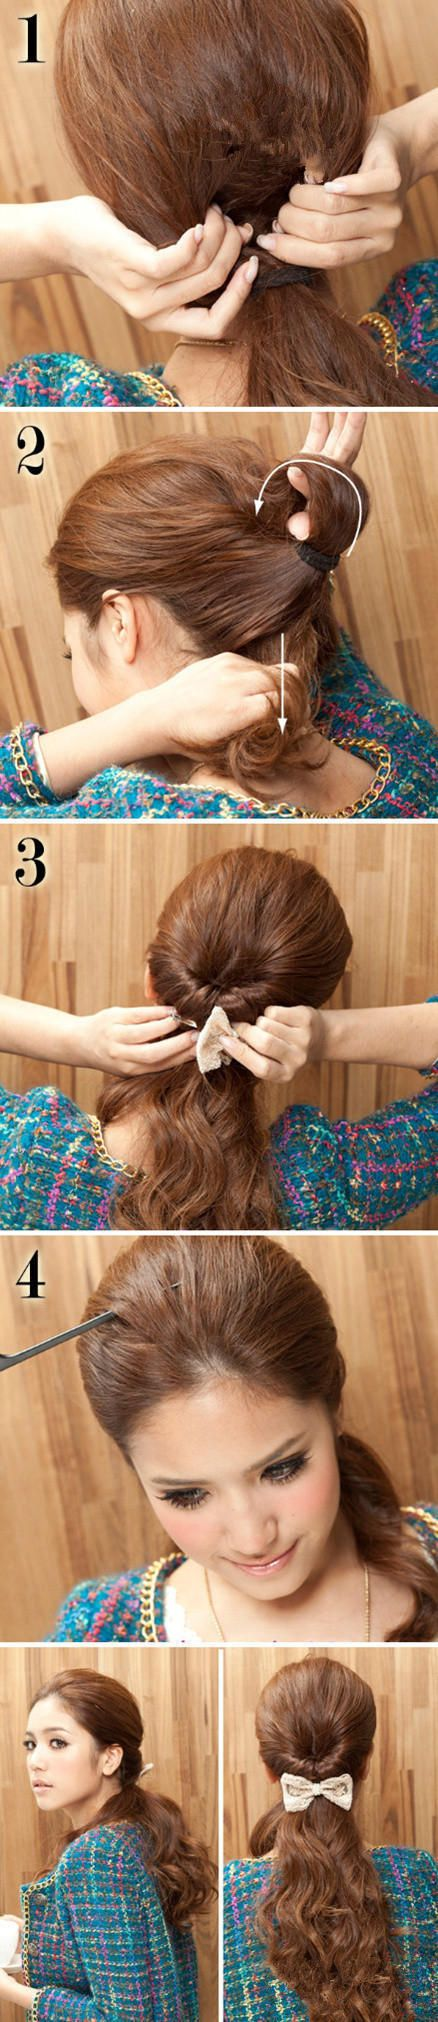 twisted ponytail, use a bow to hide the band.